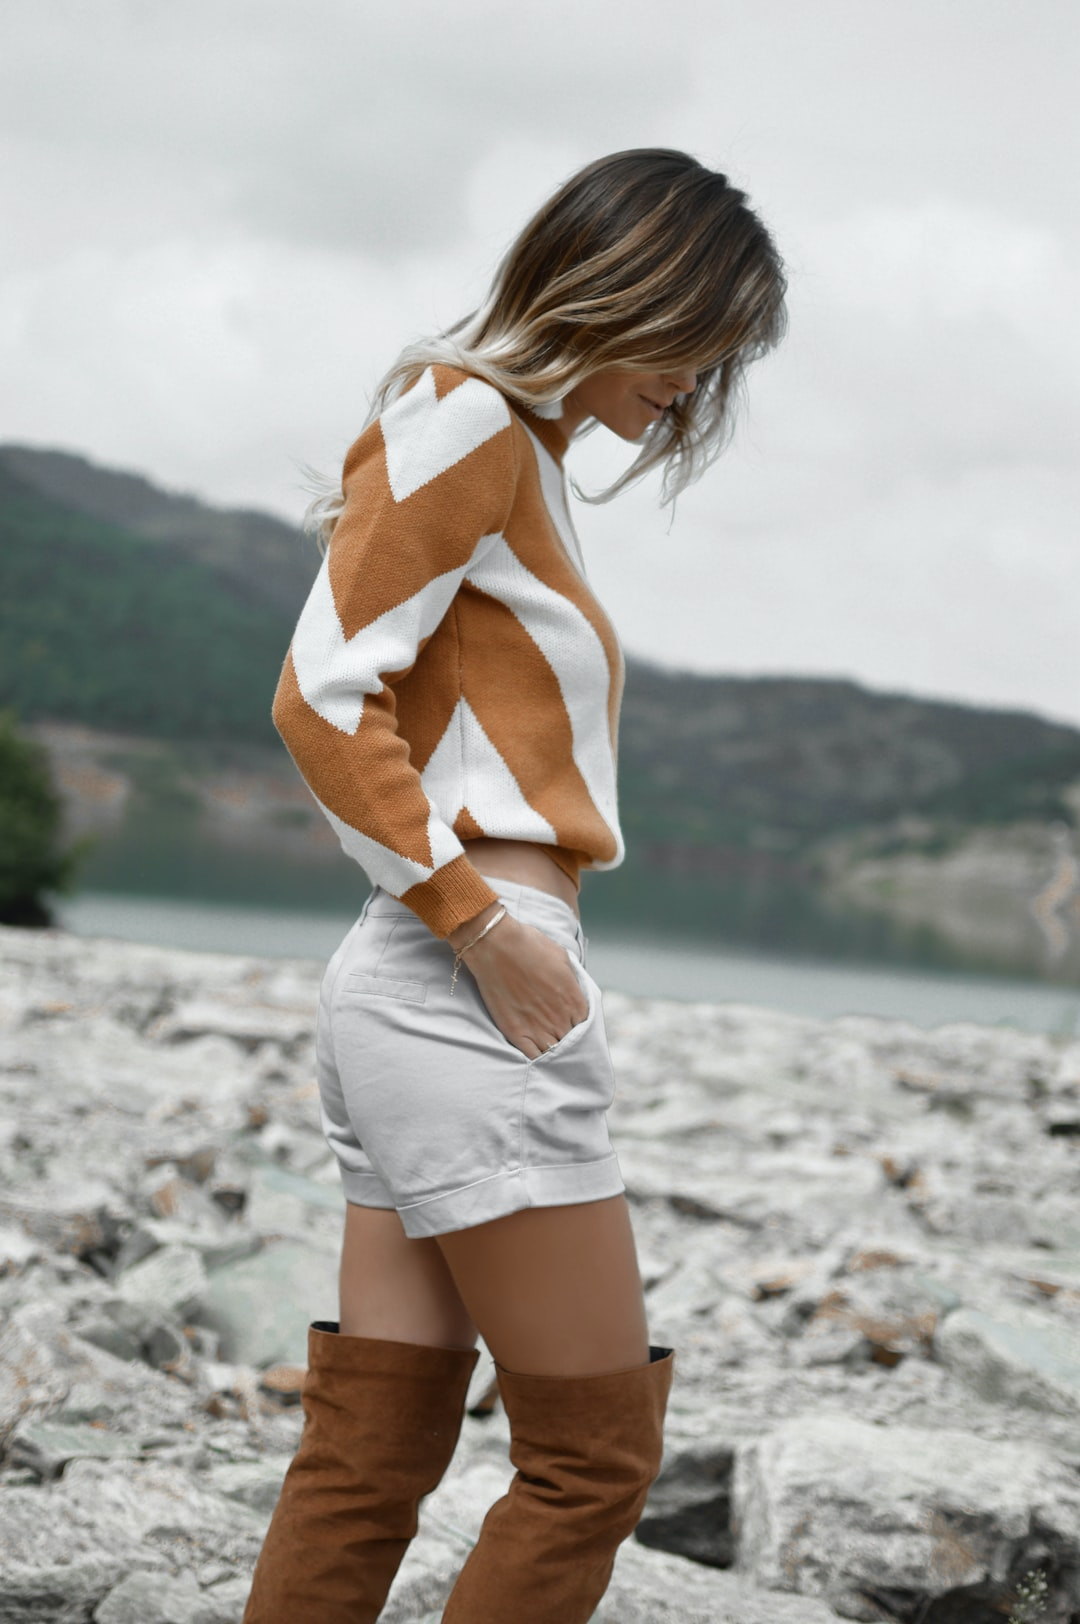 Read more: https://shinyhoney.com/blog-outfits-zaful-sweater.html